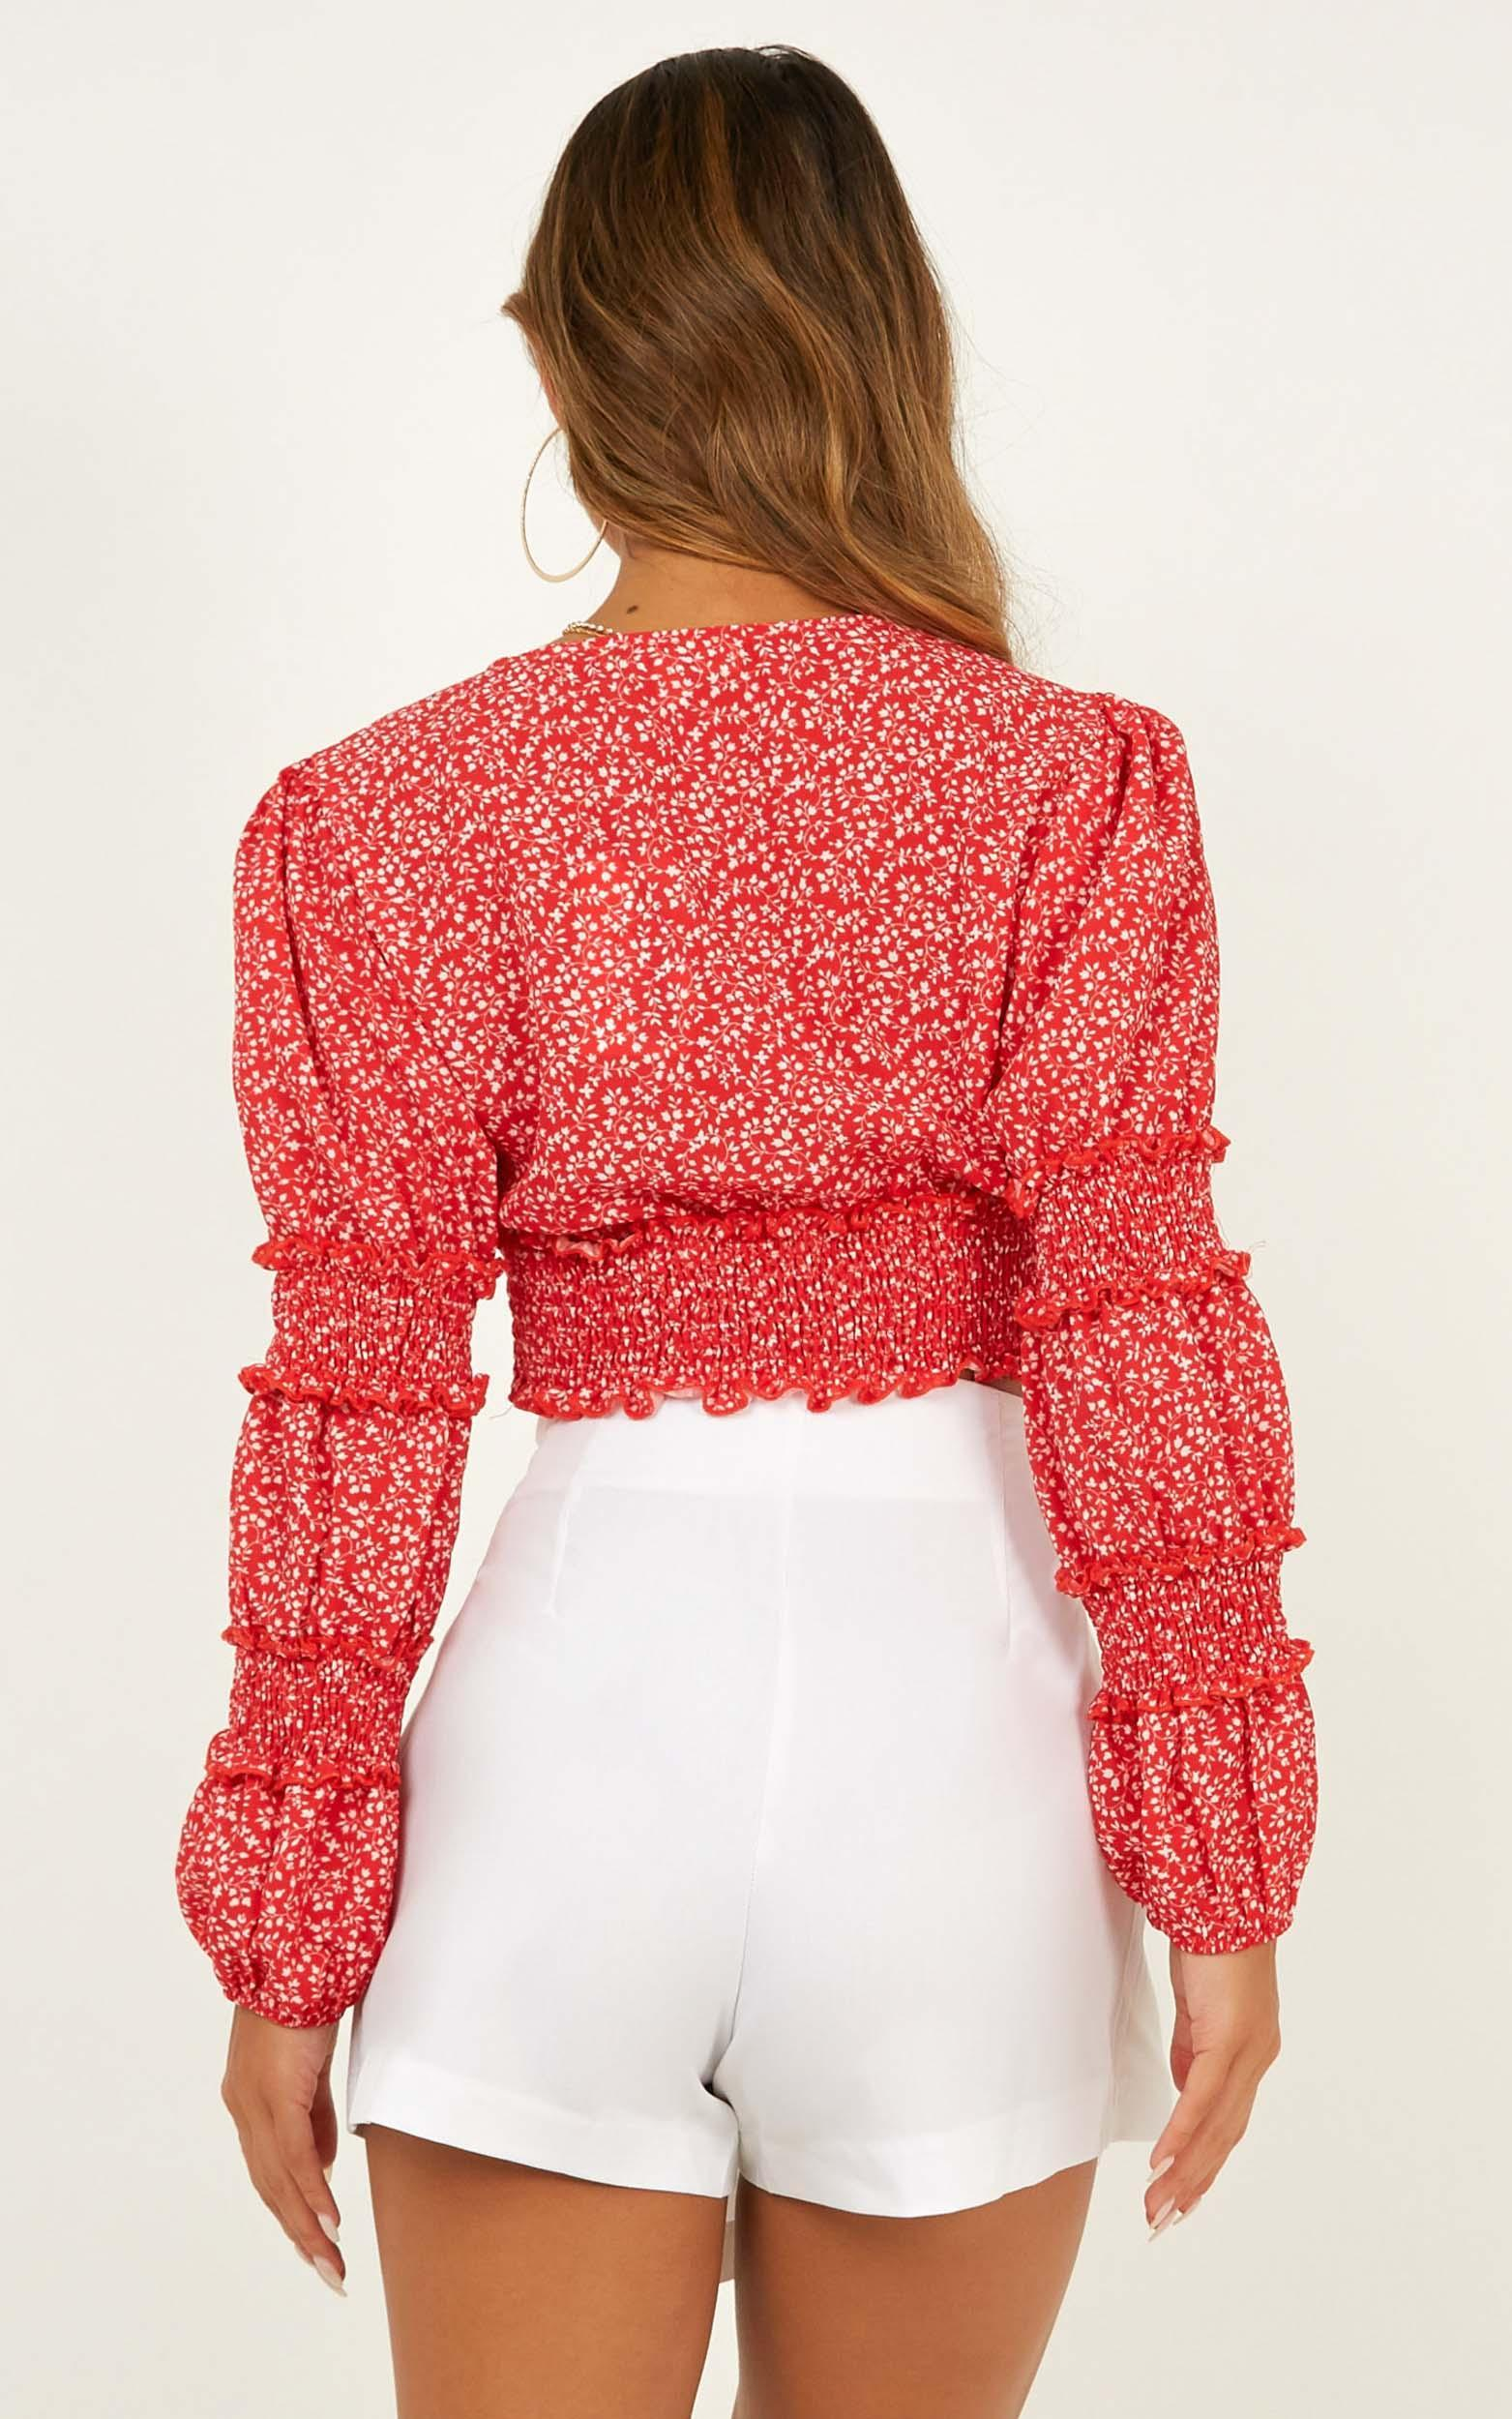 Sweet Wishing top in red floral - 12 (L), Red, hi-res image number null